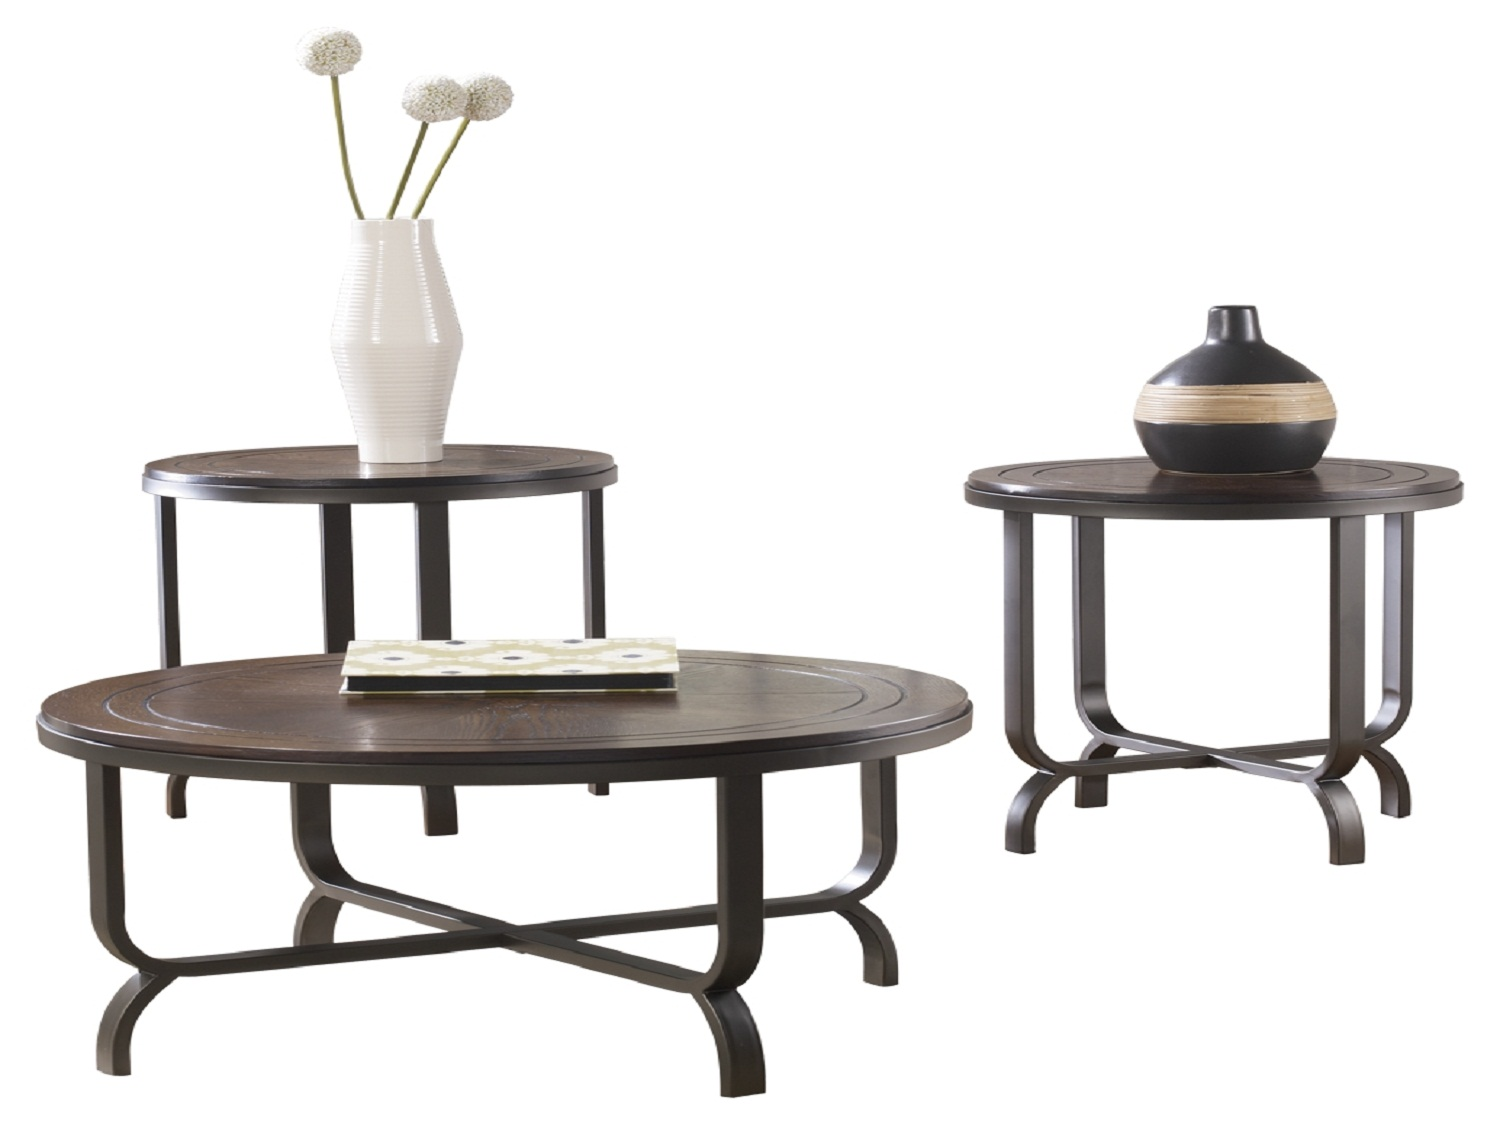 Ferlin 3 PC Coffee Table Set, T238-13, Coffee Table by Midha Furniture to Brampton, Mississauga, Etobicoke, Toronto, Scraborough, Caledon, Oakville, Markham, Ajax, Pickering, Oshawa, Richmondhill, Kitchener, Hamilton and GTA area